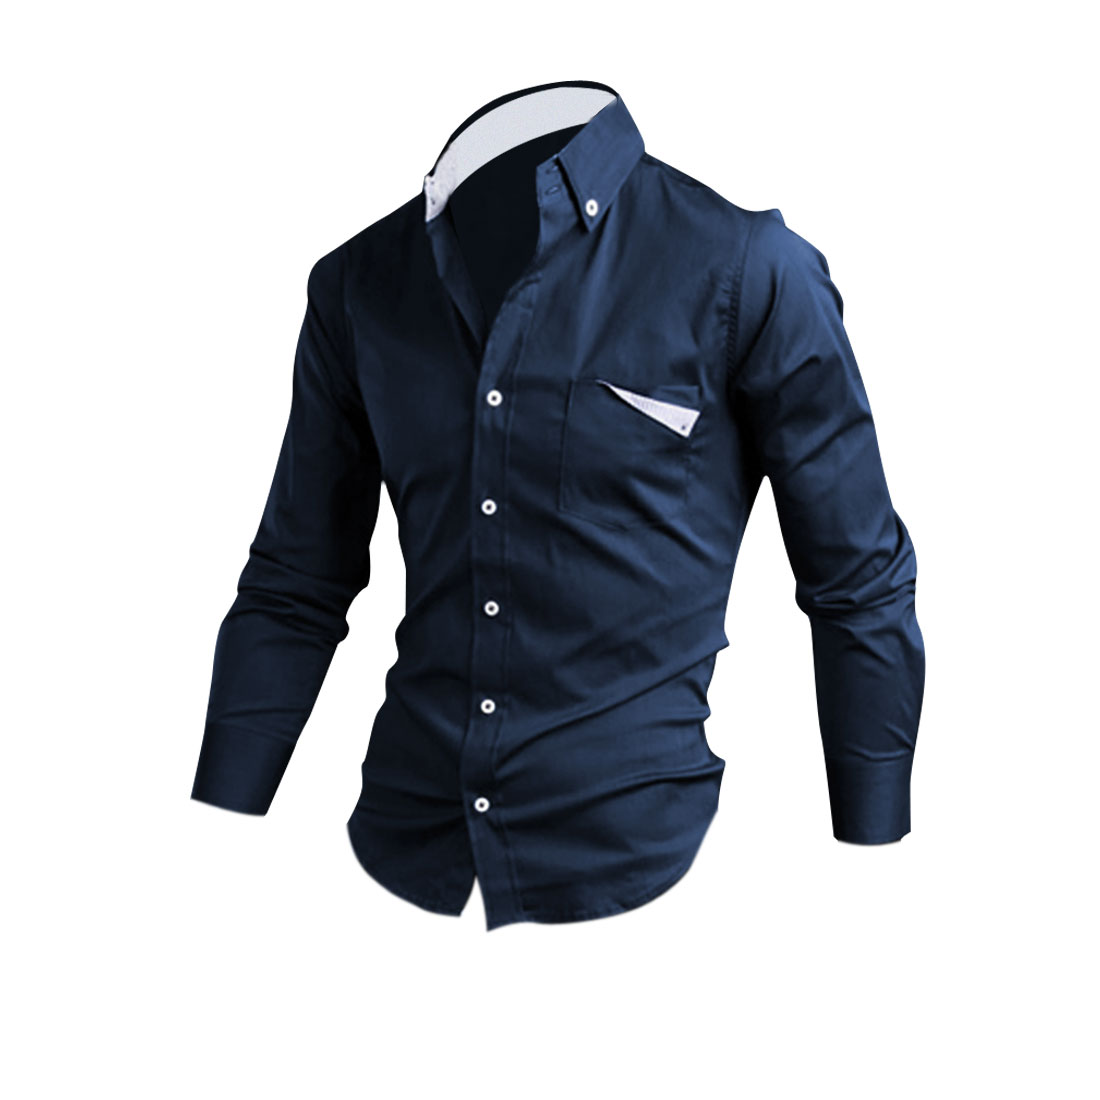 Men Point Collar Chest Pocket Fashion Shirt Dark Blue M